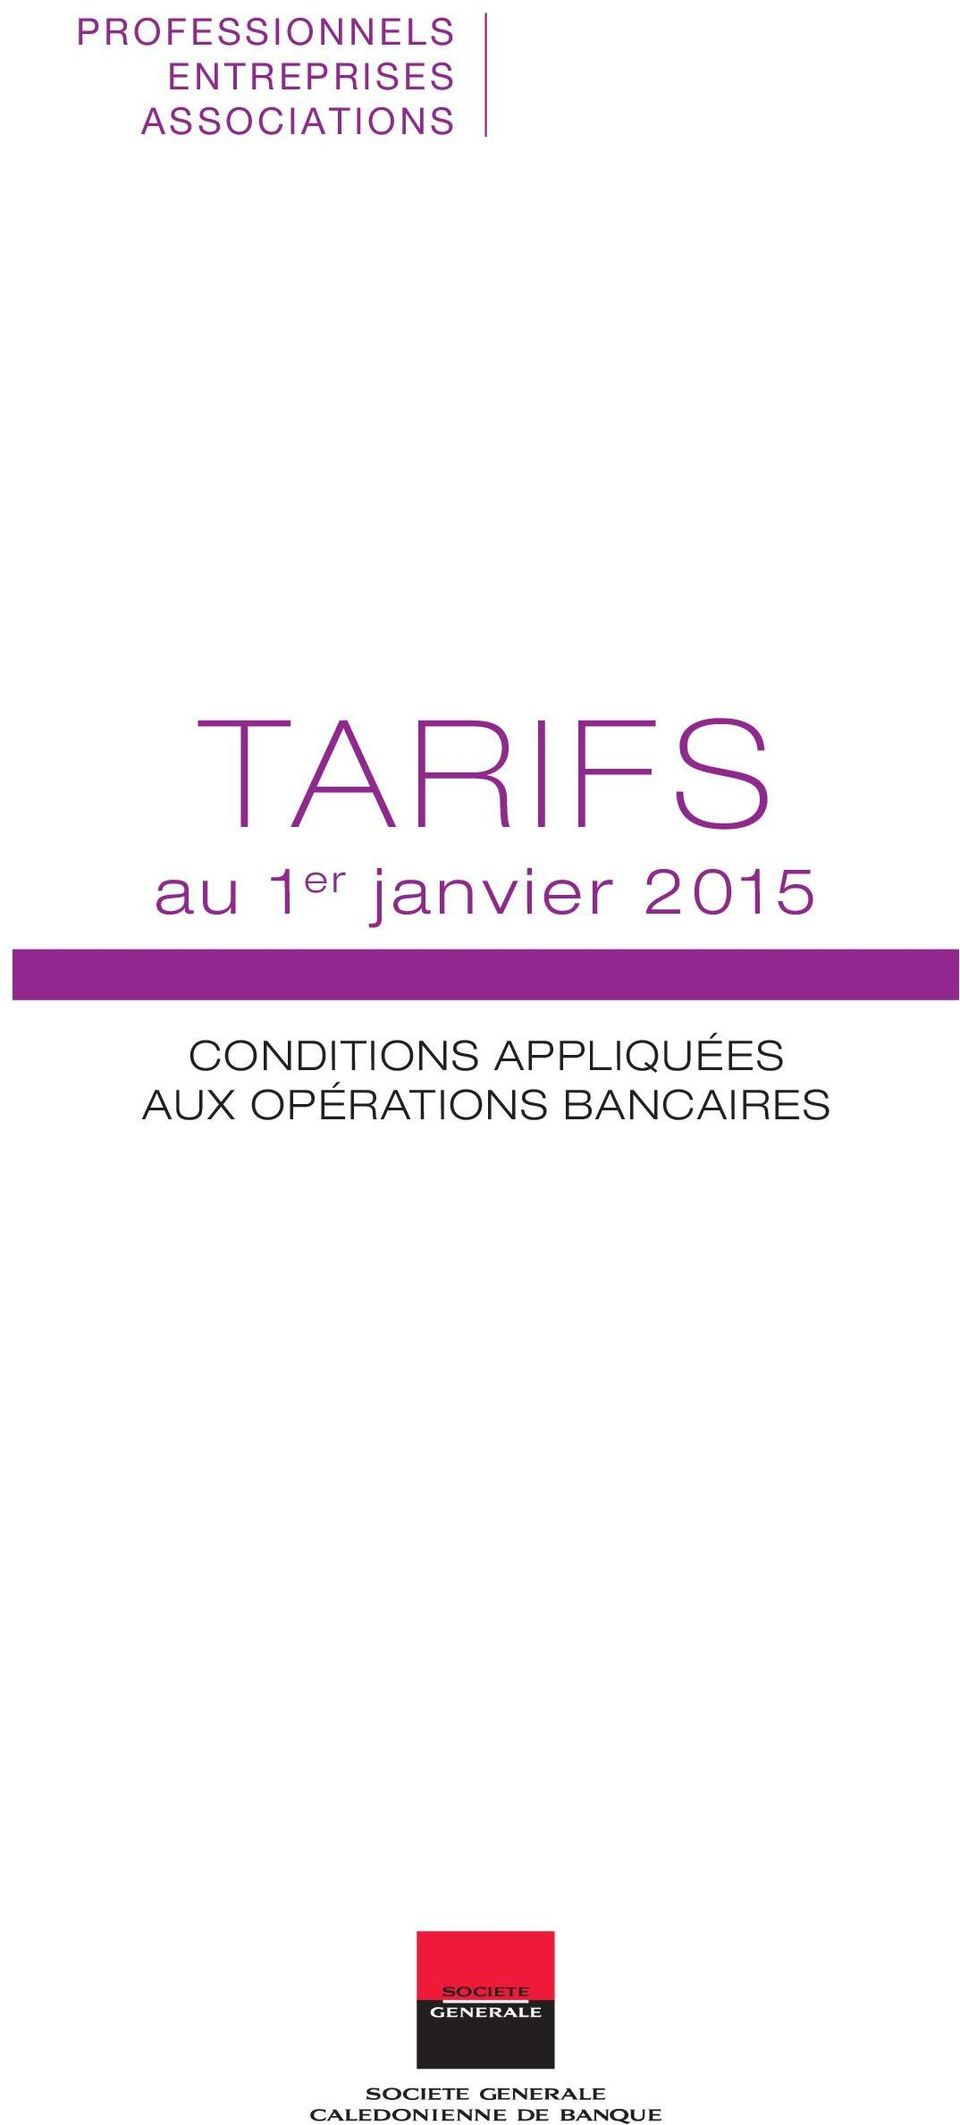 janvier 2015 Conditions